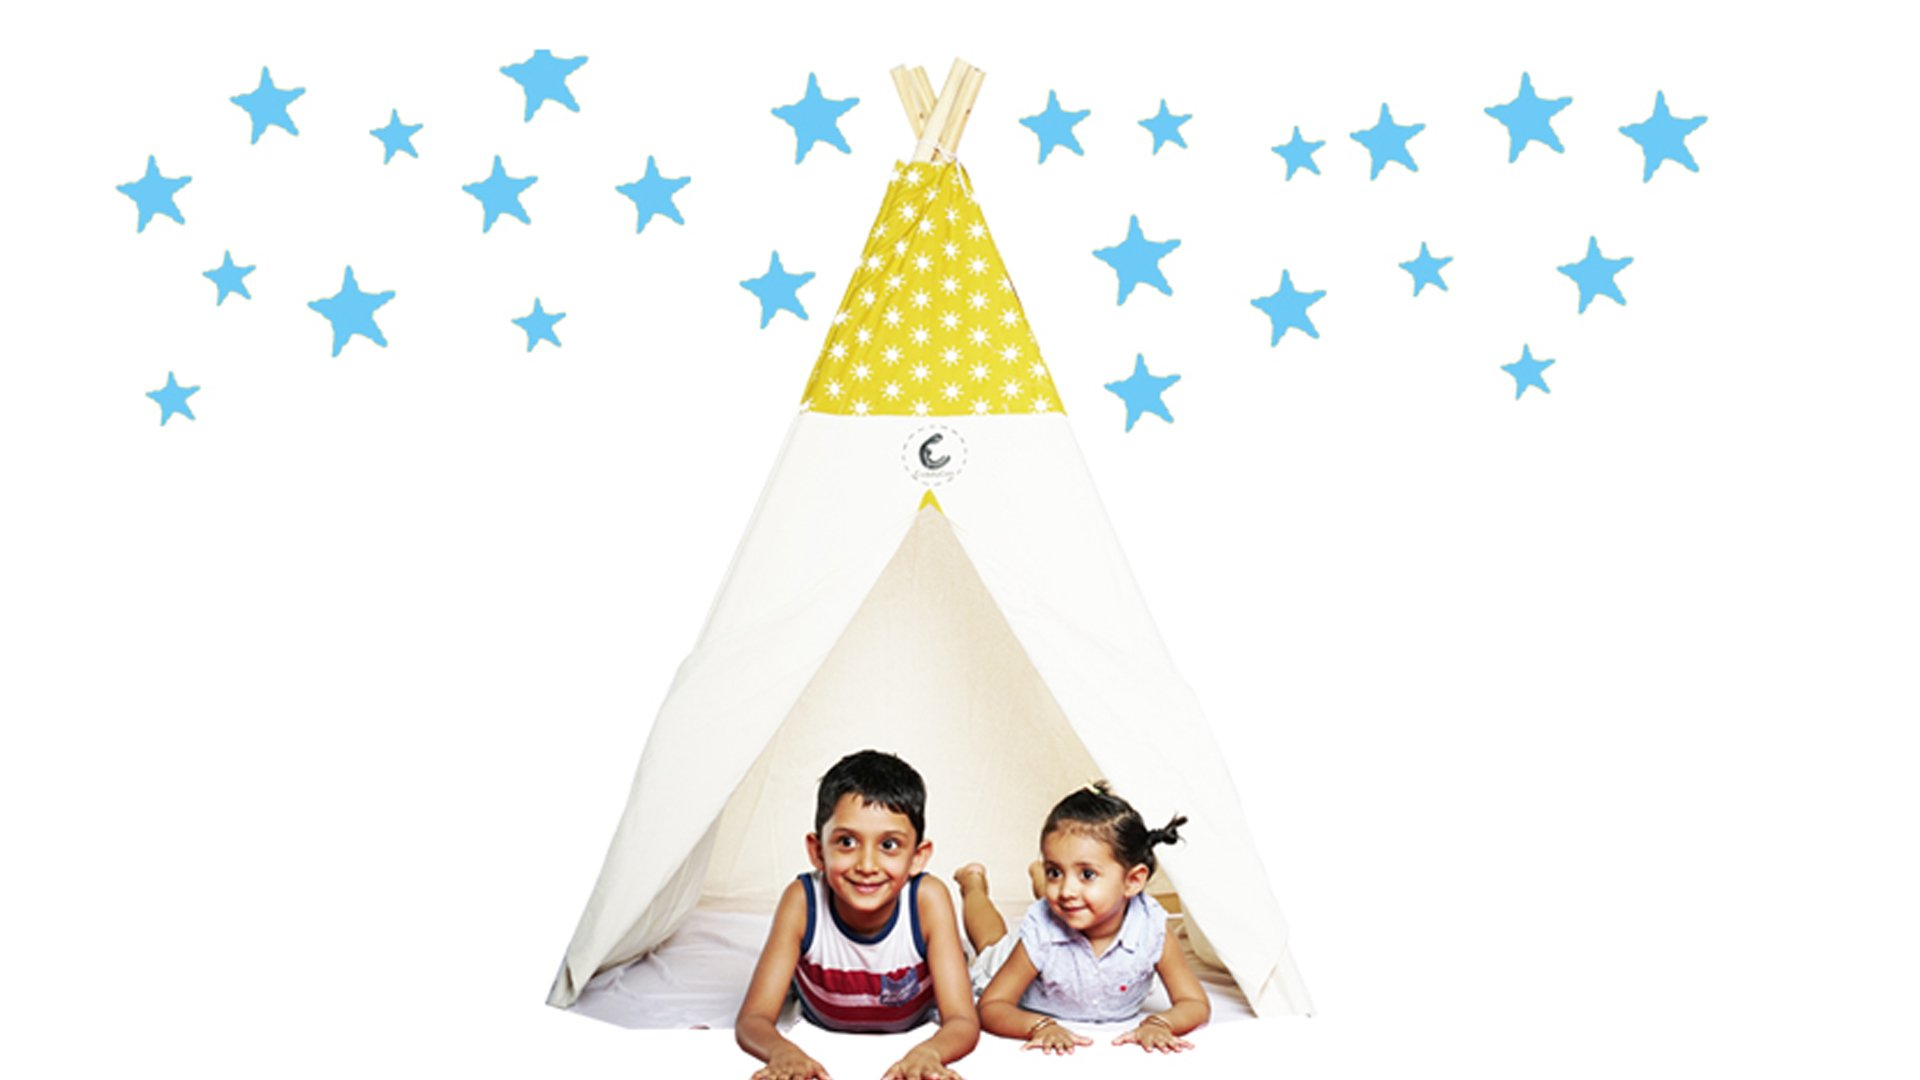 Children's teepee tent